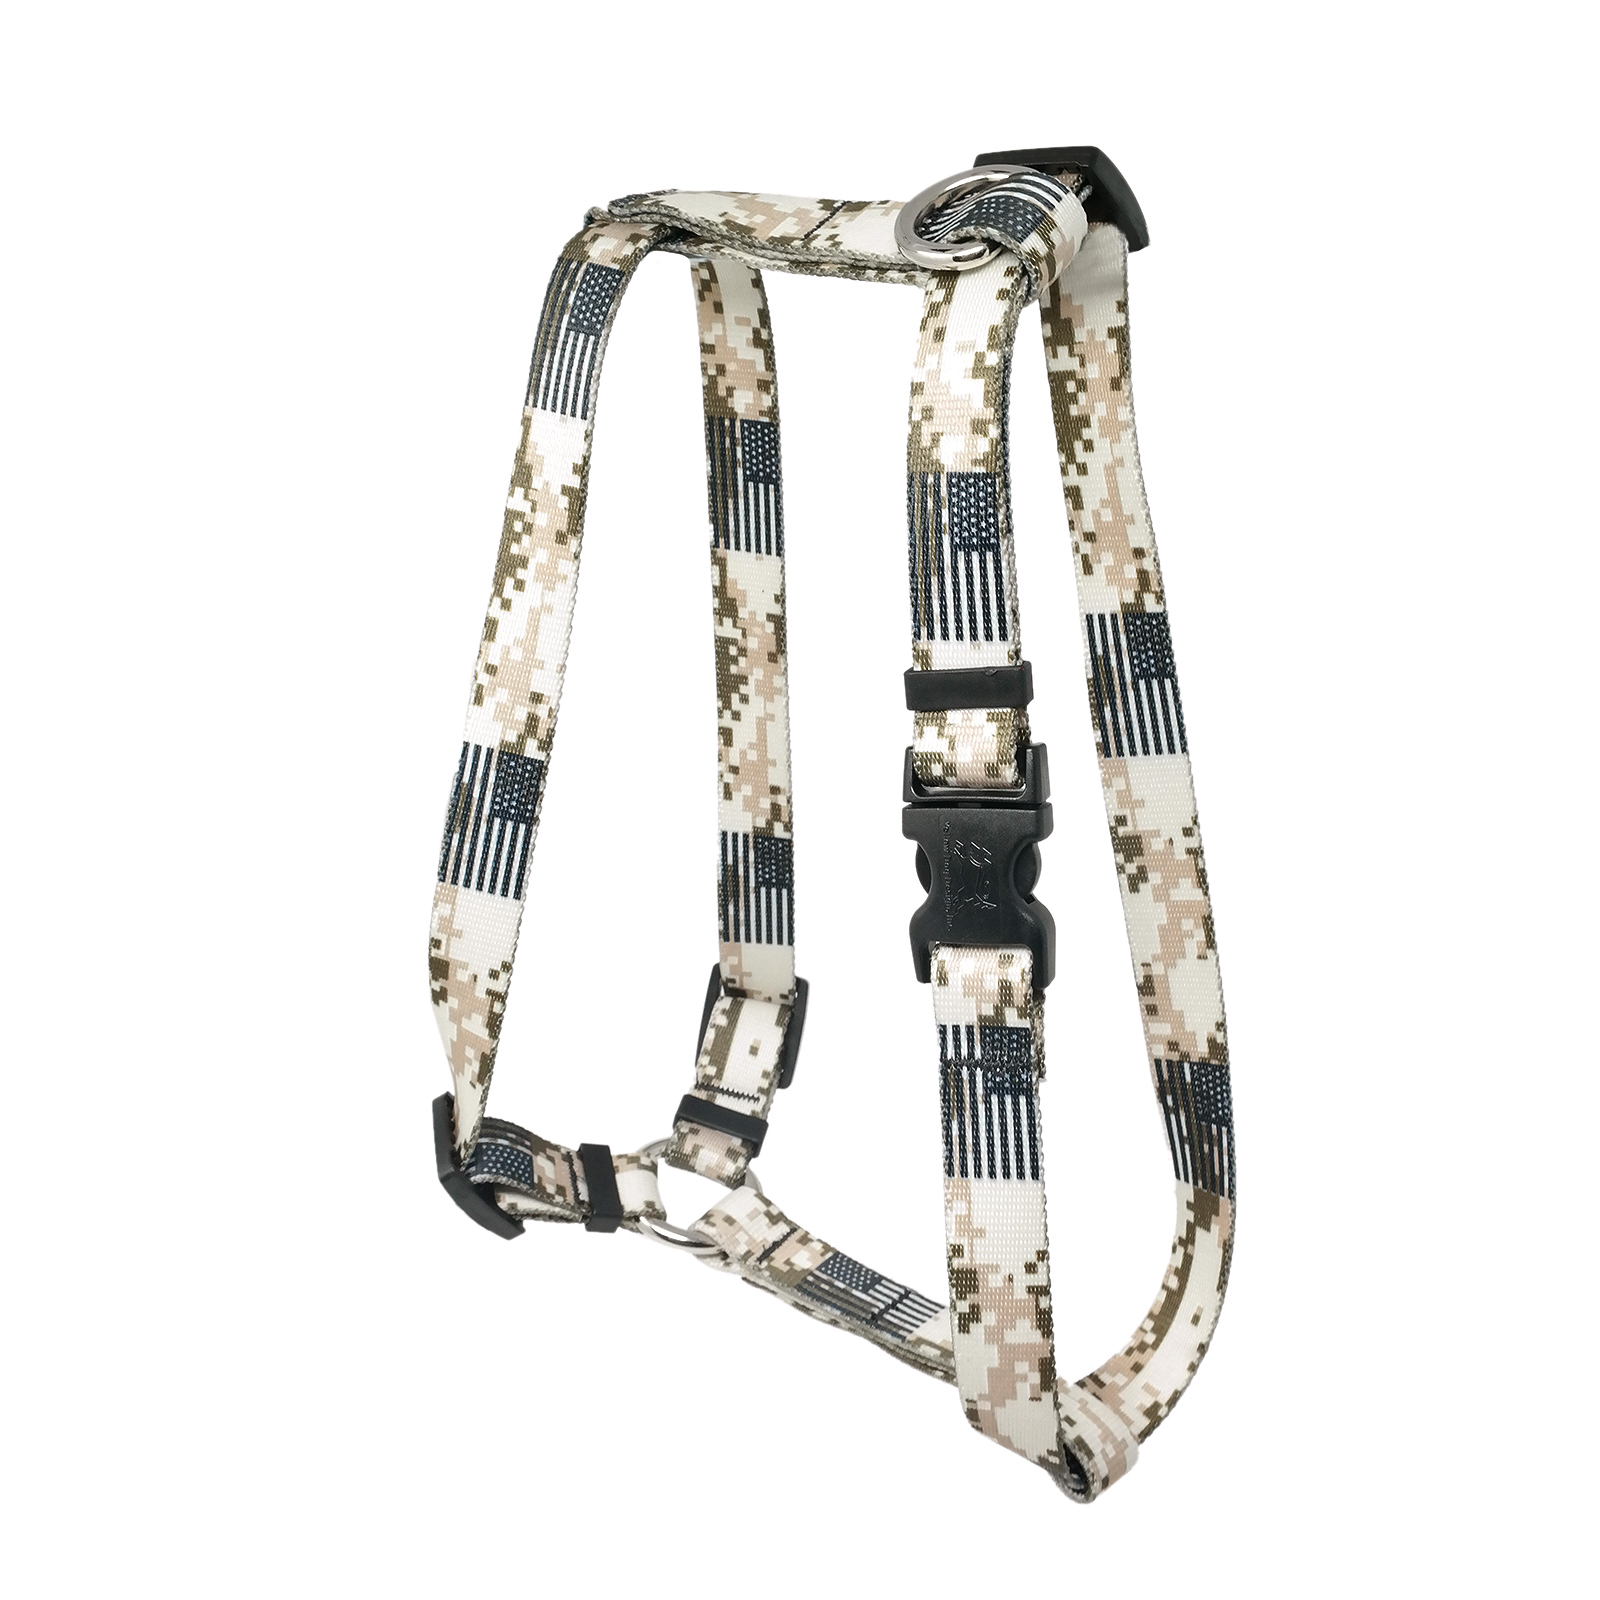 Urban Camo Roman H Harness